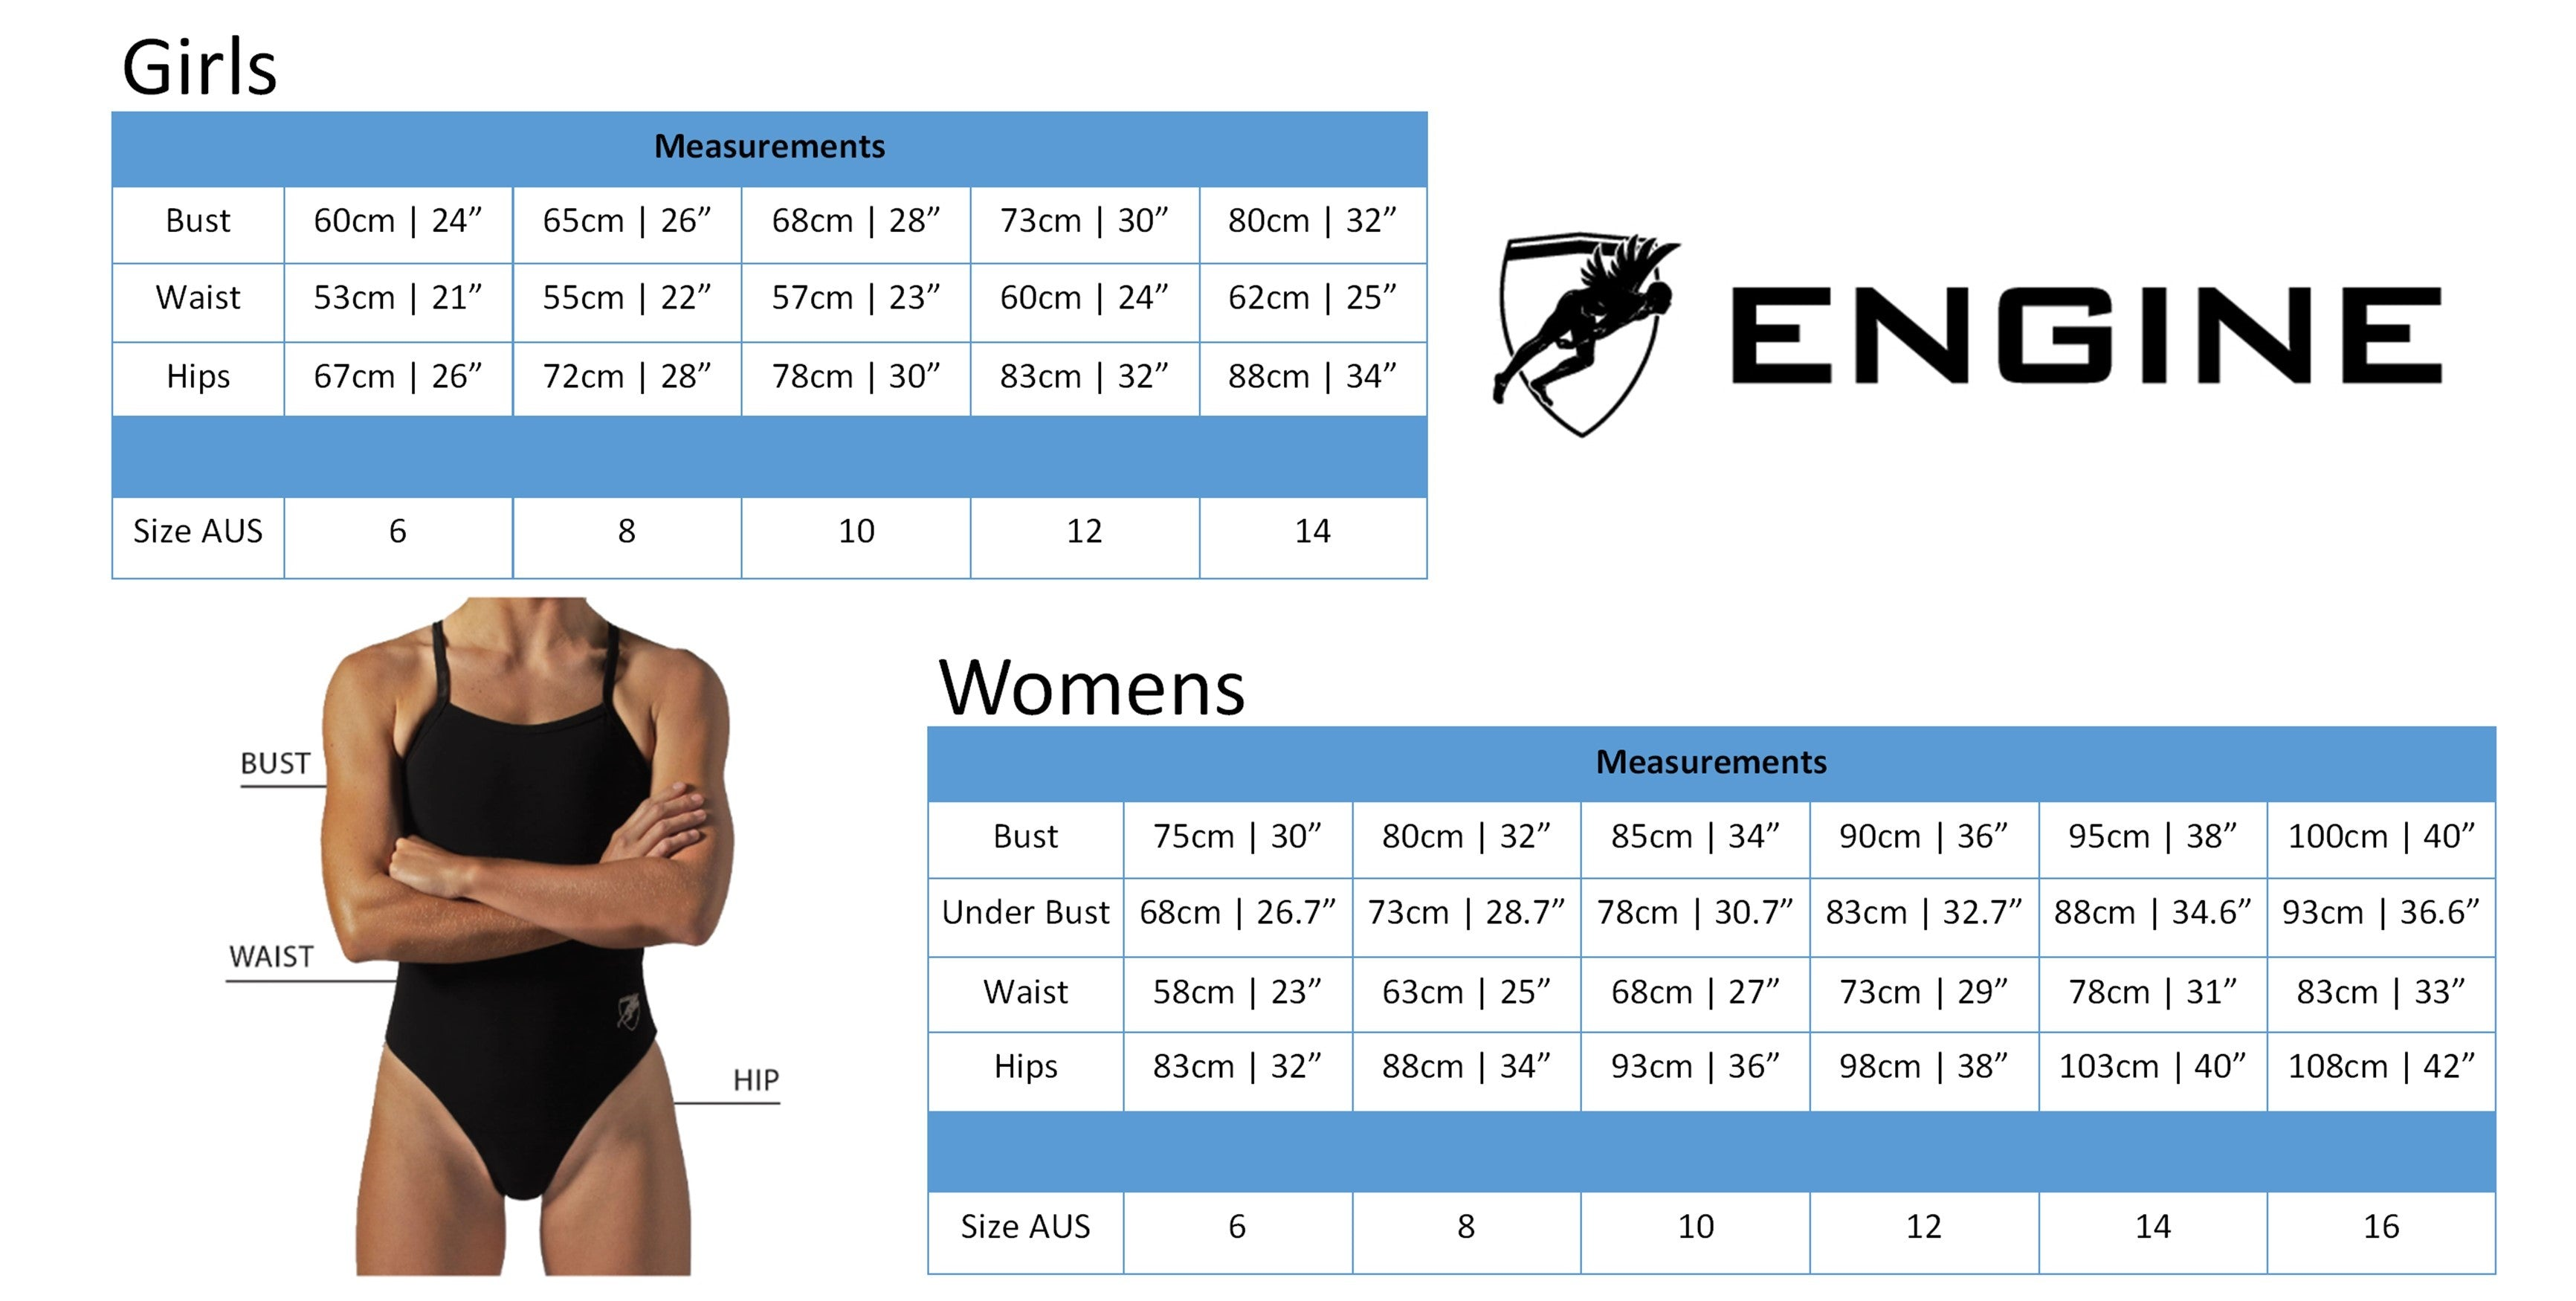 Engine female size chart